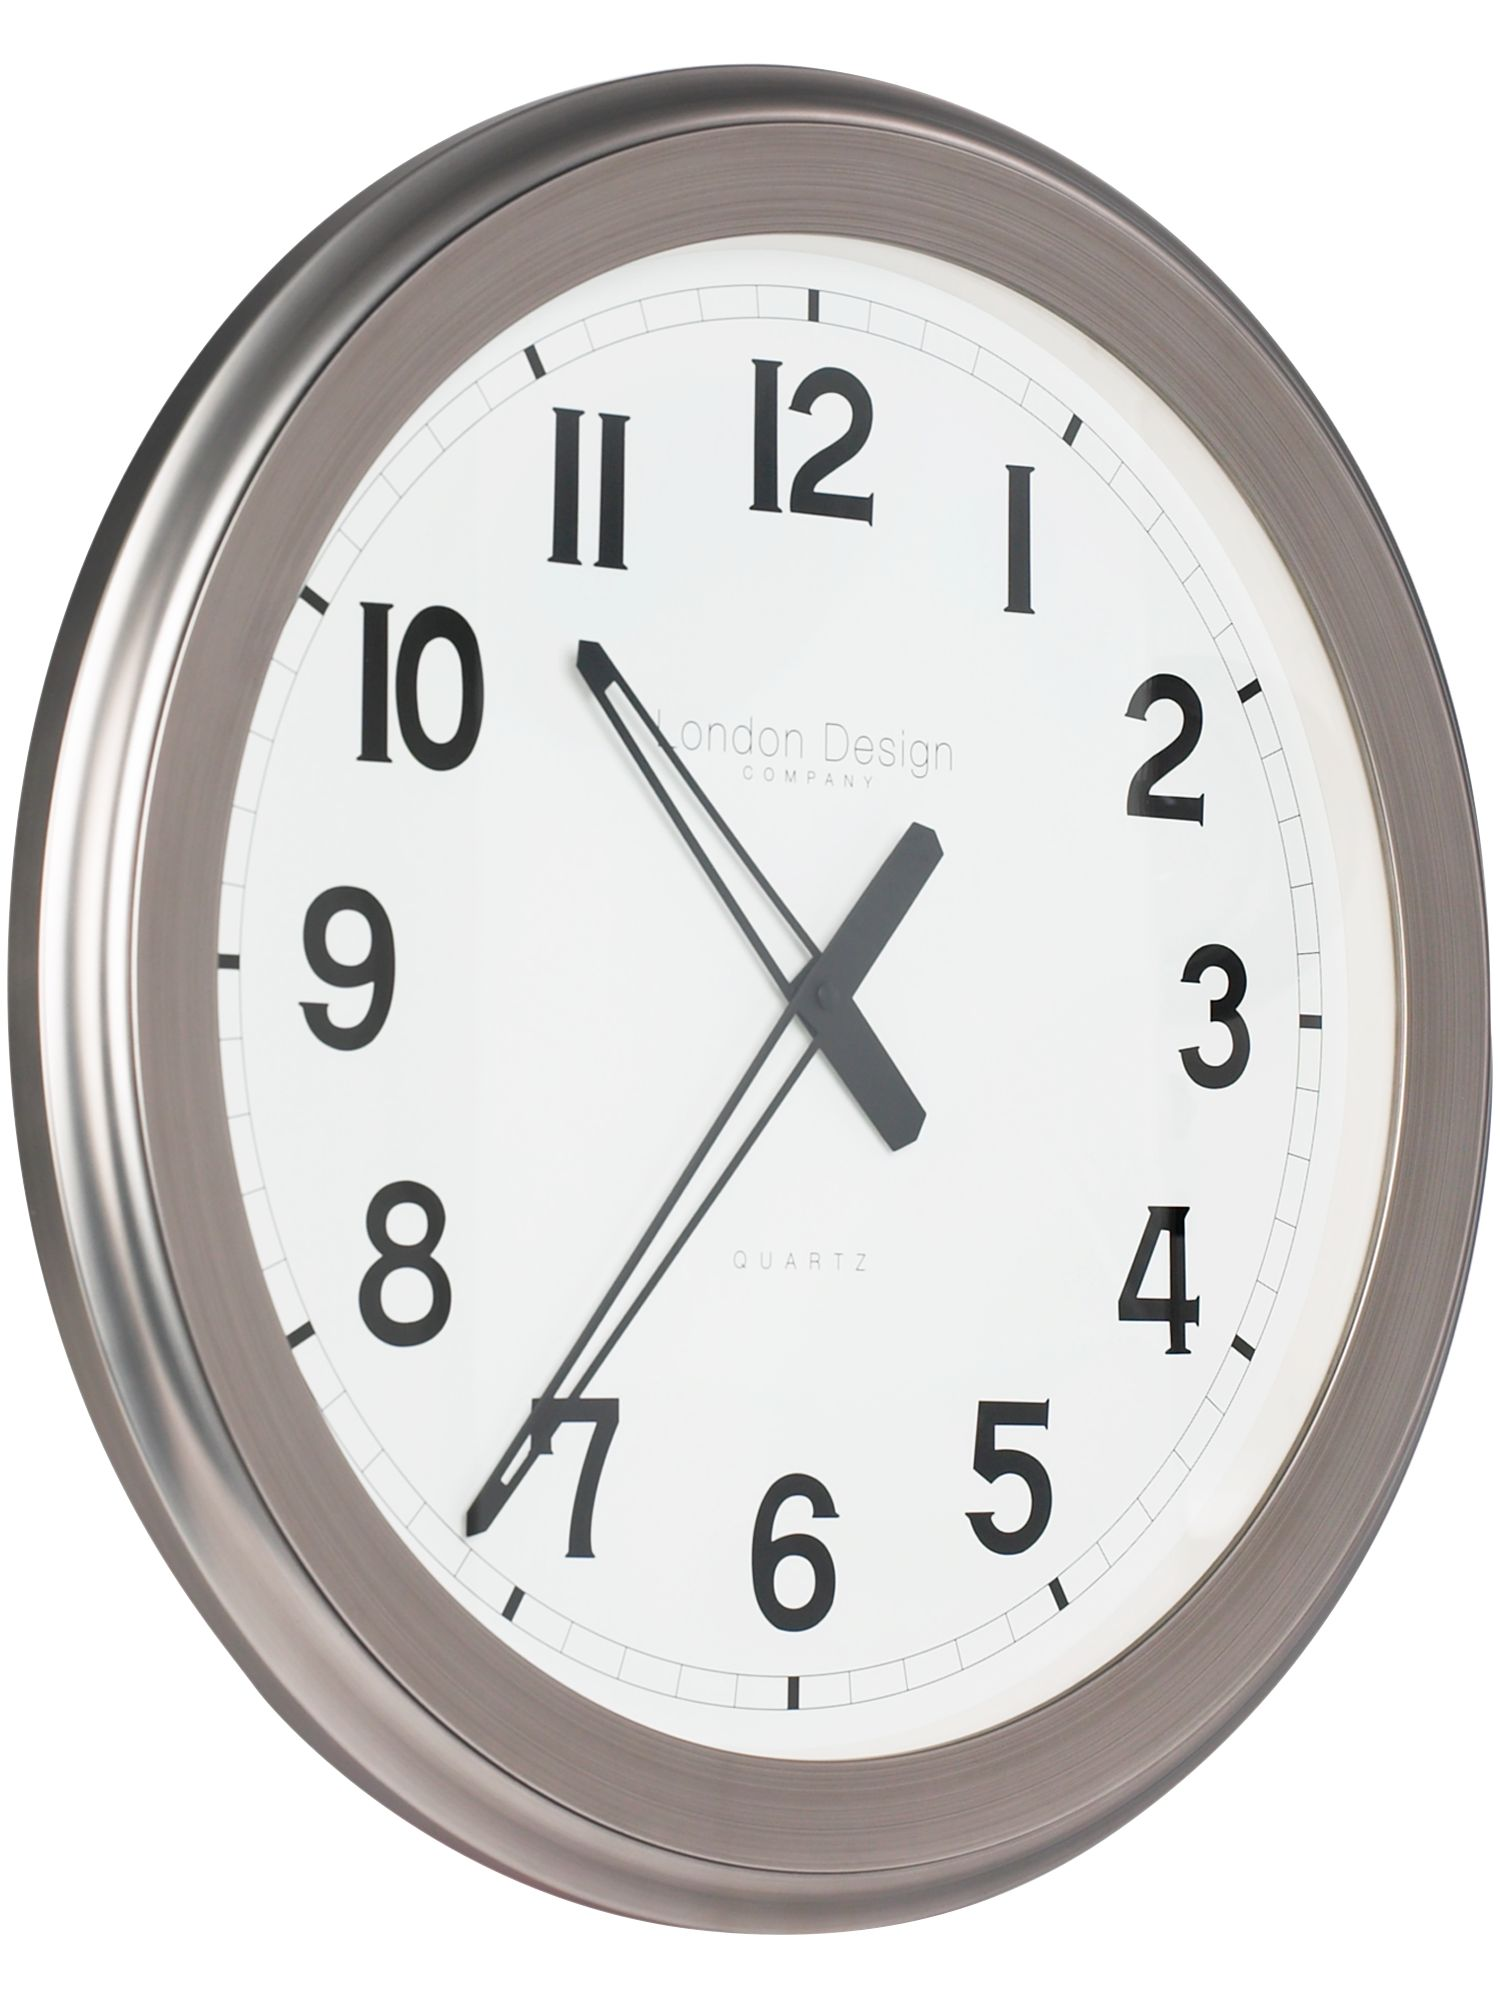 Inexpensive Wall Clock Compare Prices Of Wall Clocks Read Wall Clock Reviews